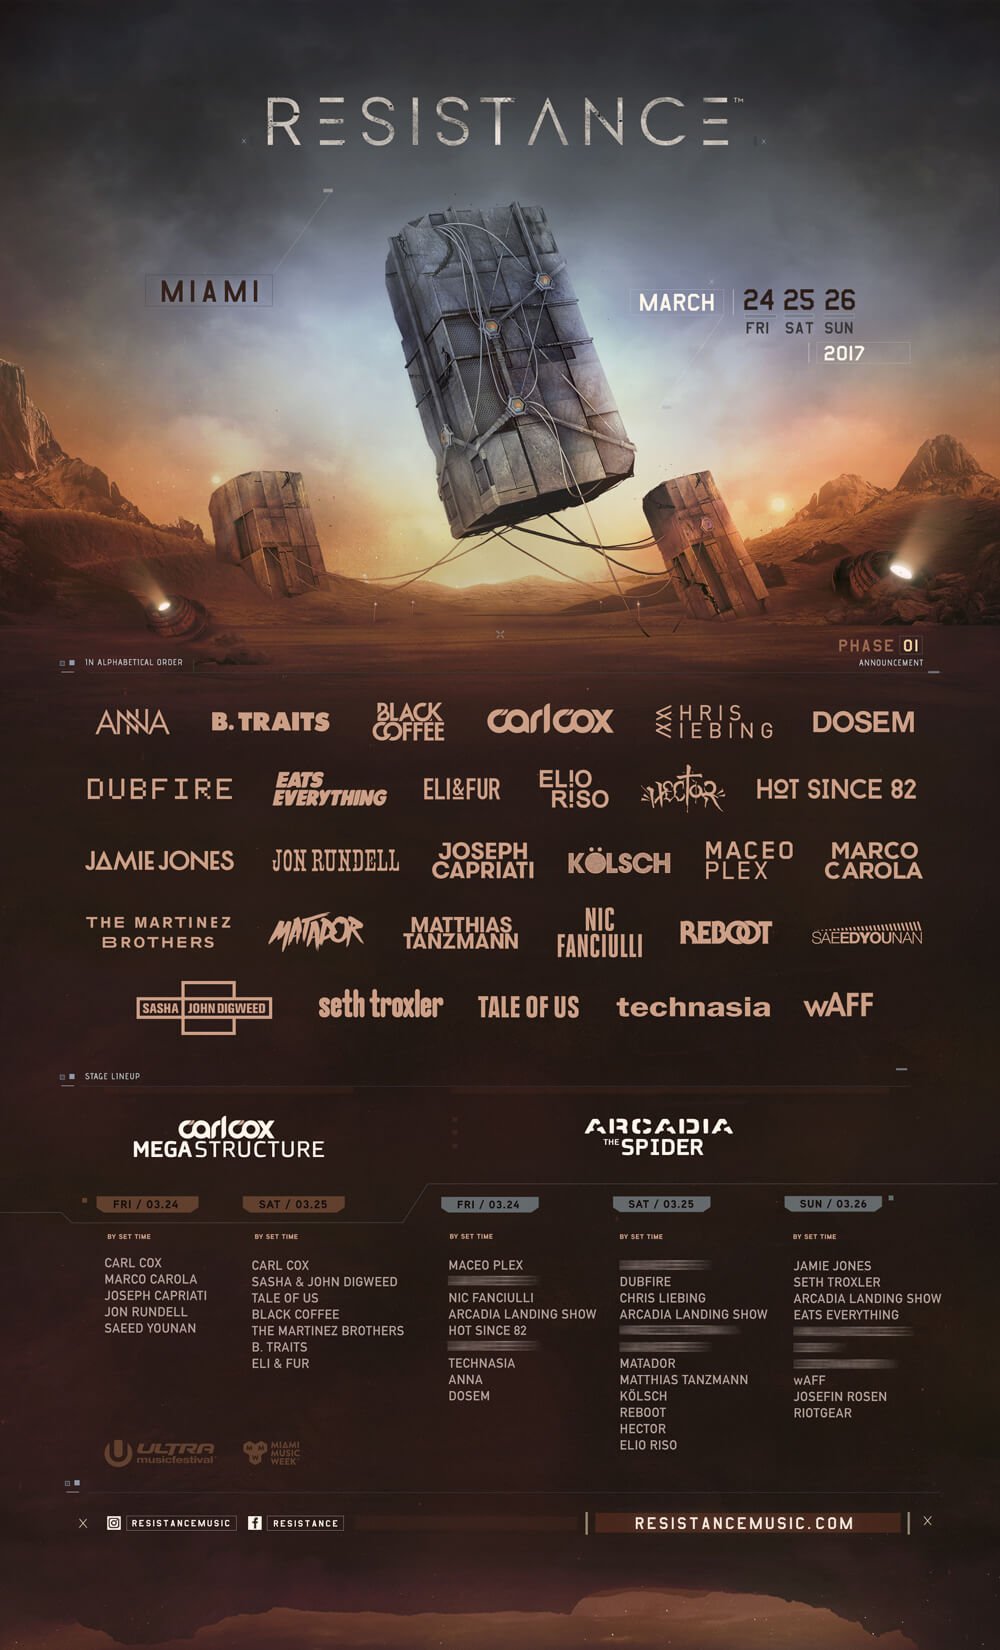 Ultra Music Festival Confirms Thirty-One Acts in Biggest Resistance Phase 1 Lineup To Date